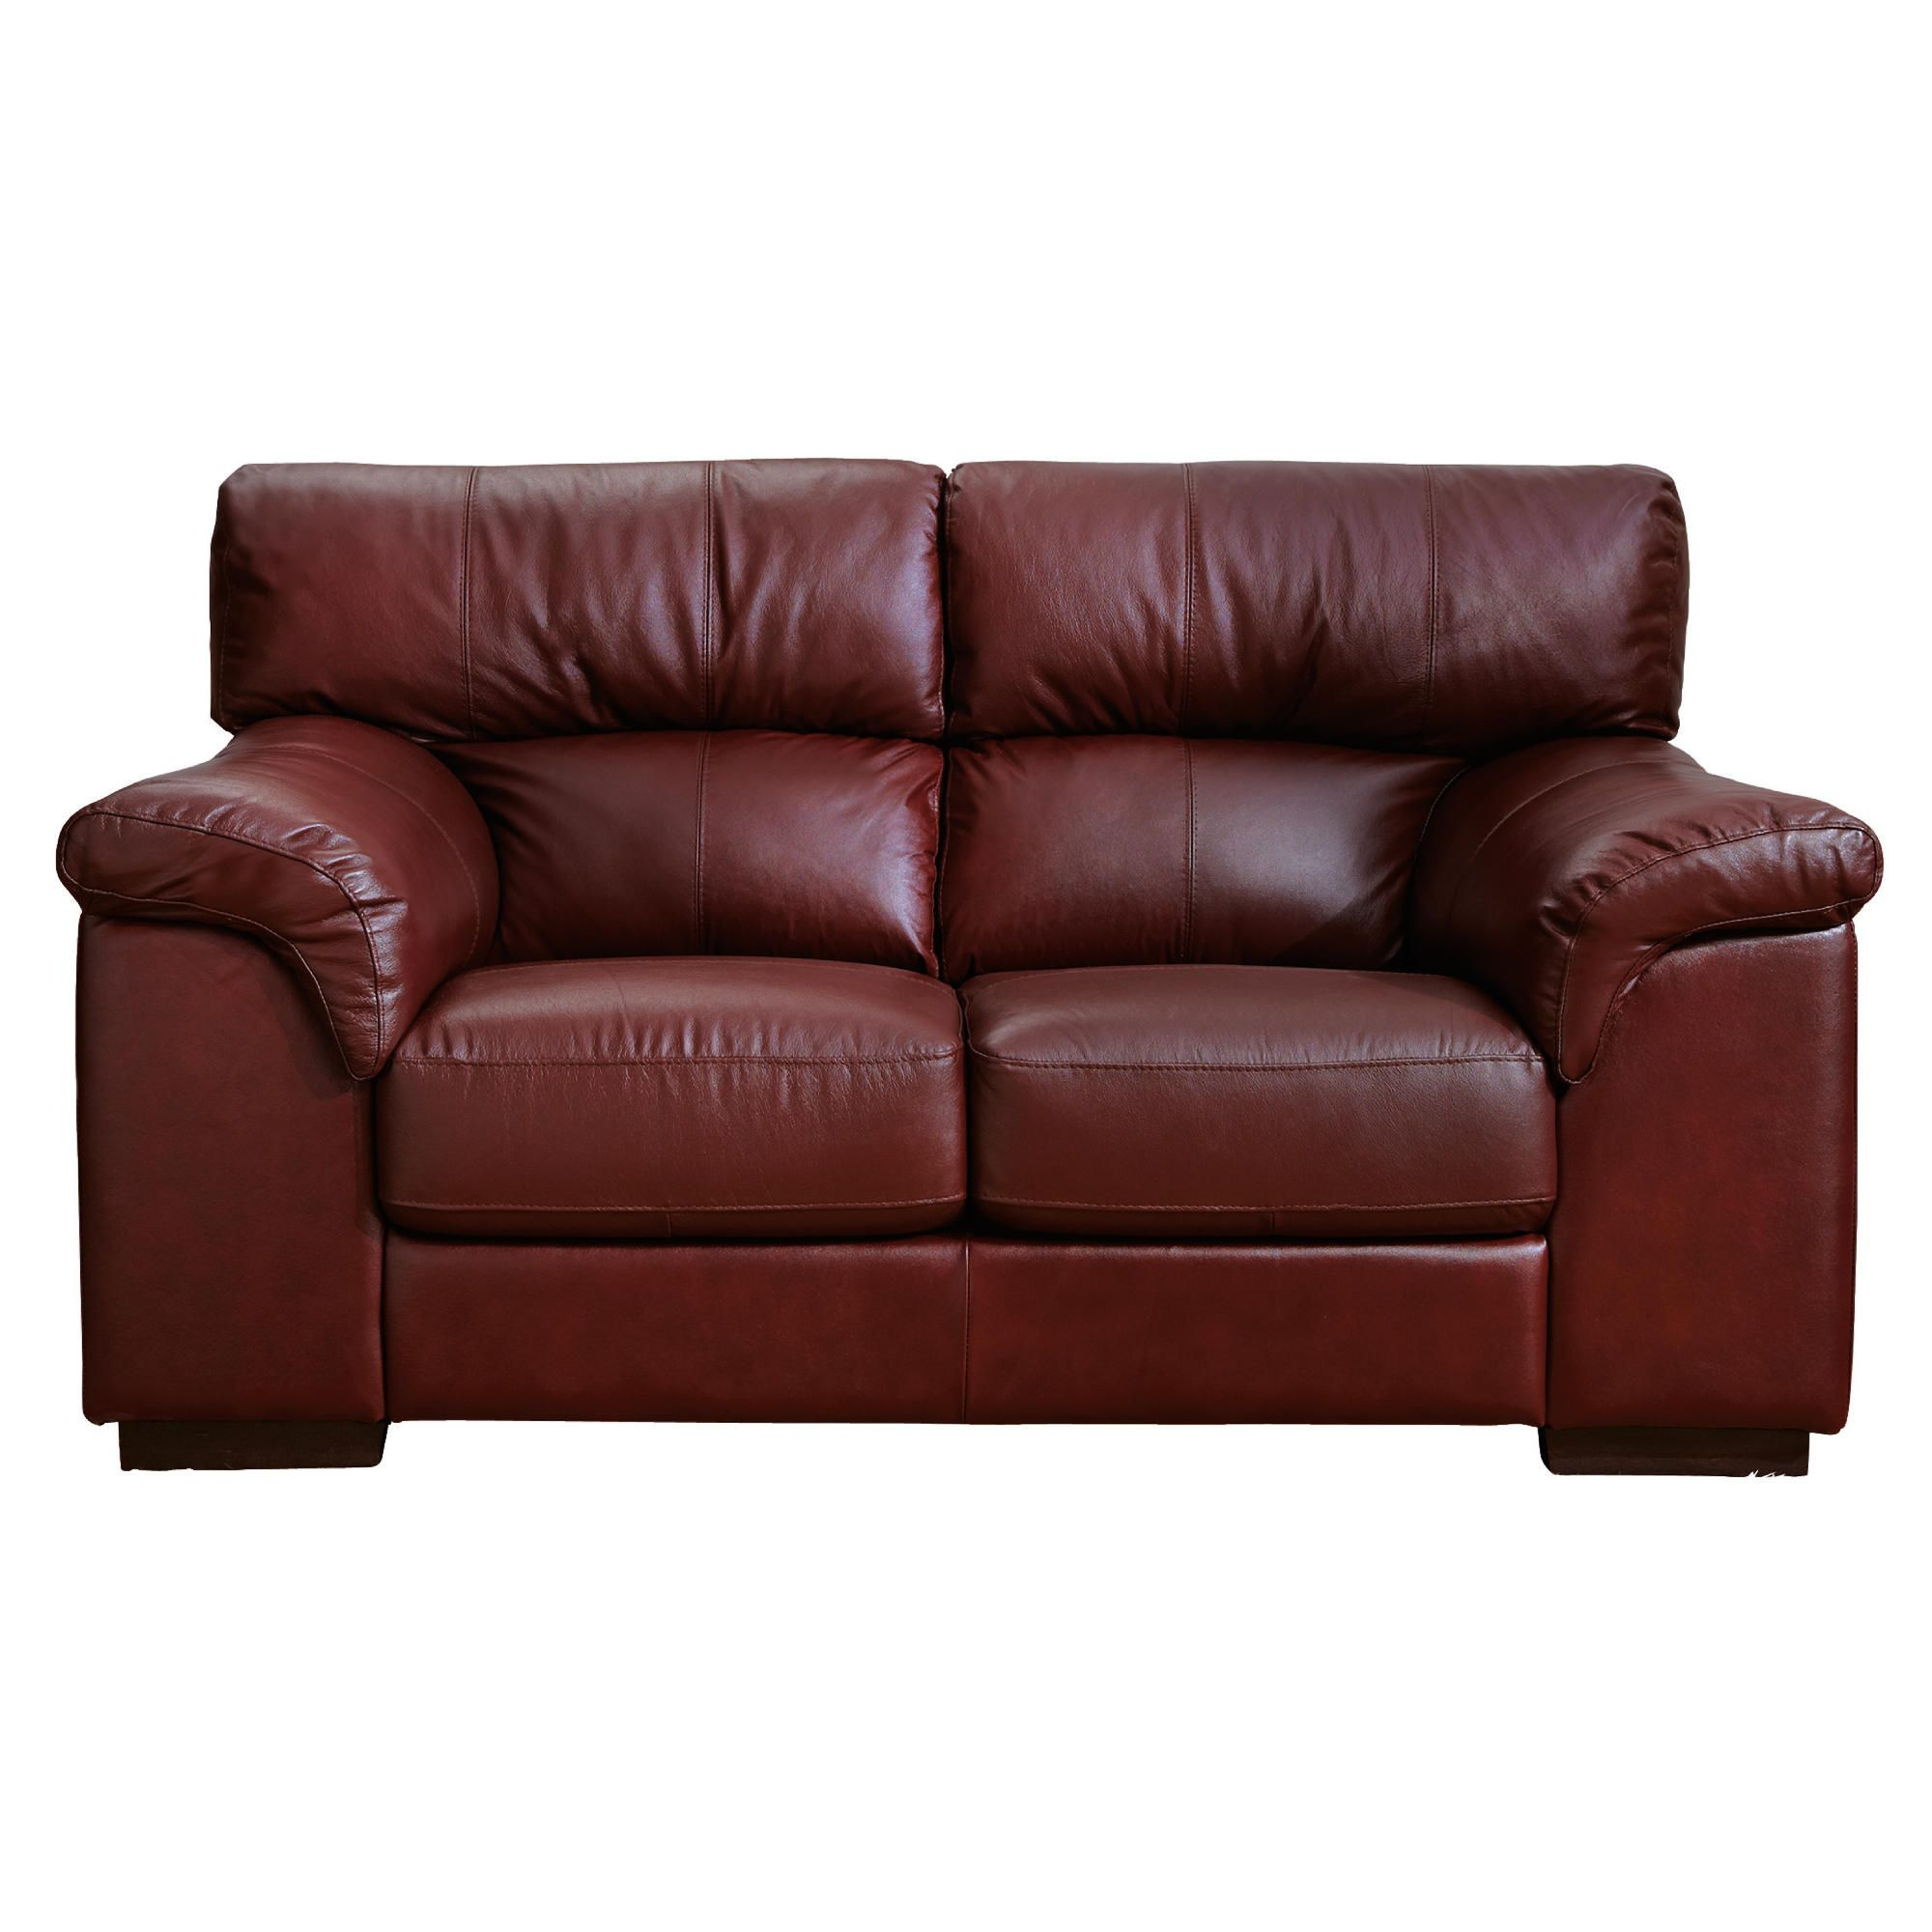 Galileo Small Leather Sofa Chestnut at Tesco Direct